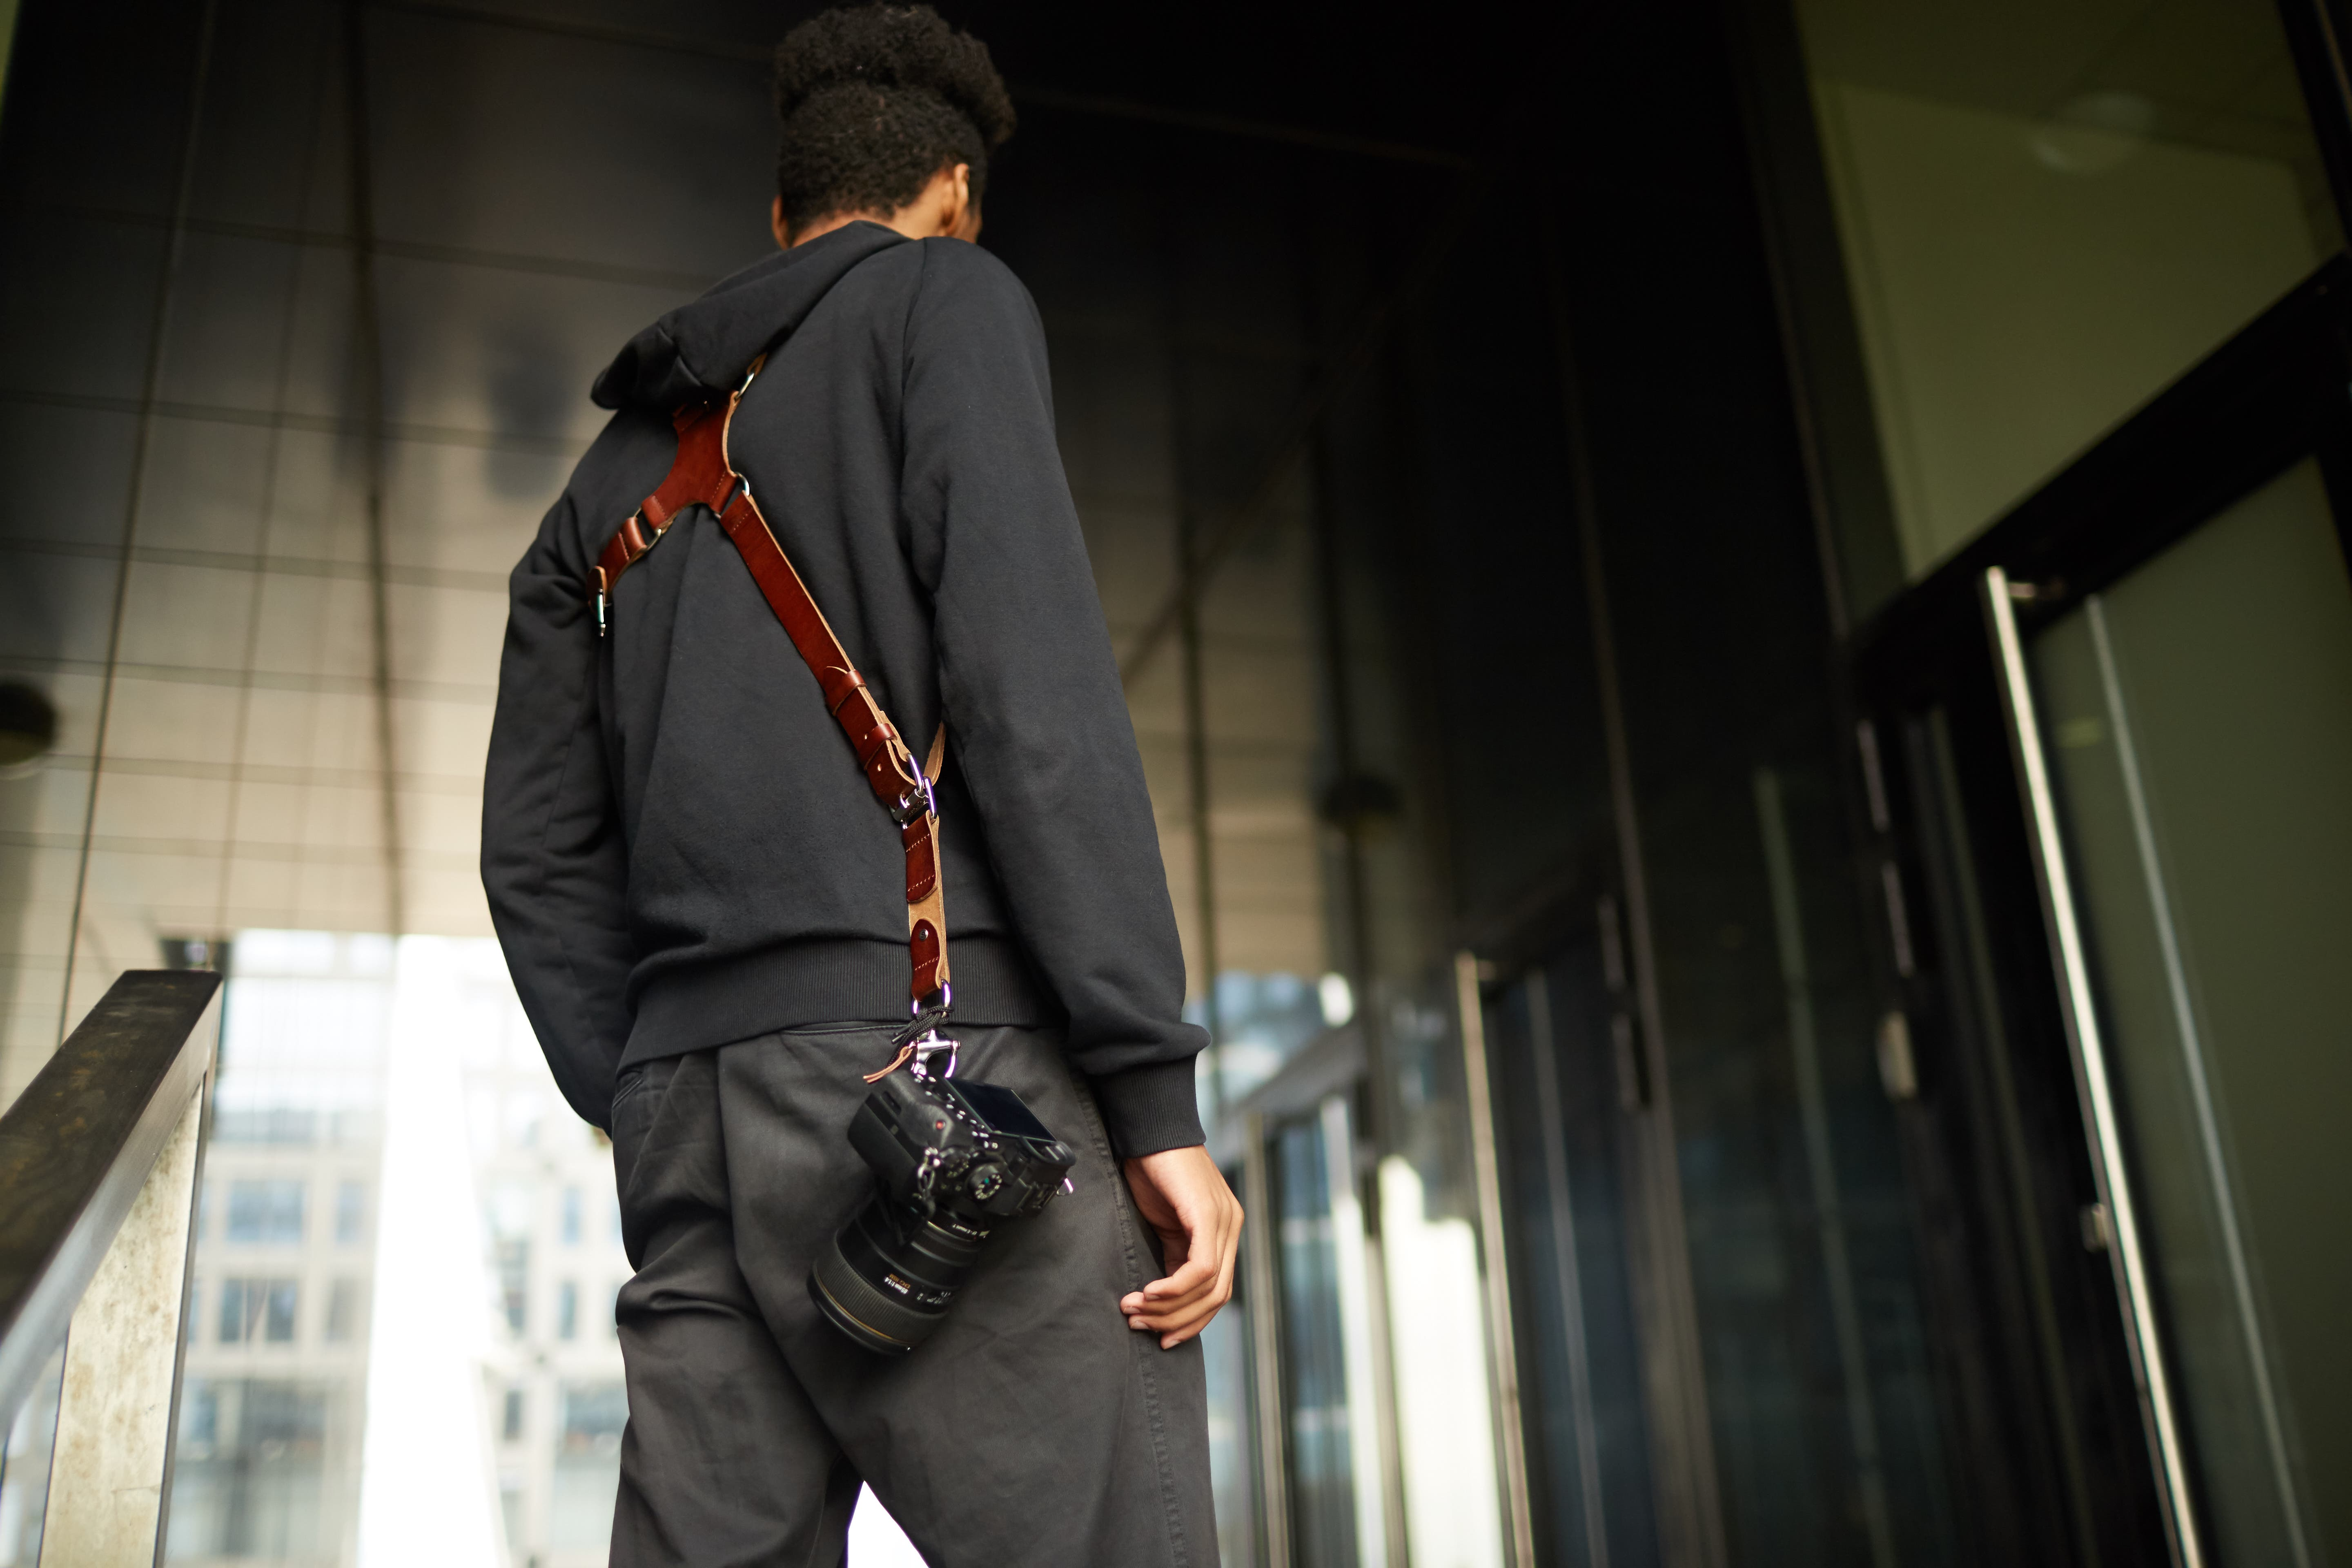 The Fotcase Harness Strap Pledges to Be Comfortable and Stylish